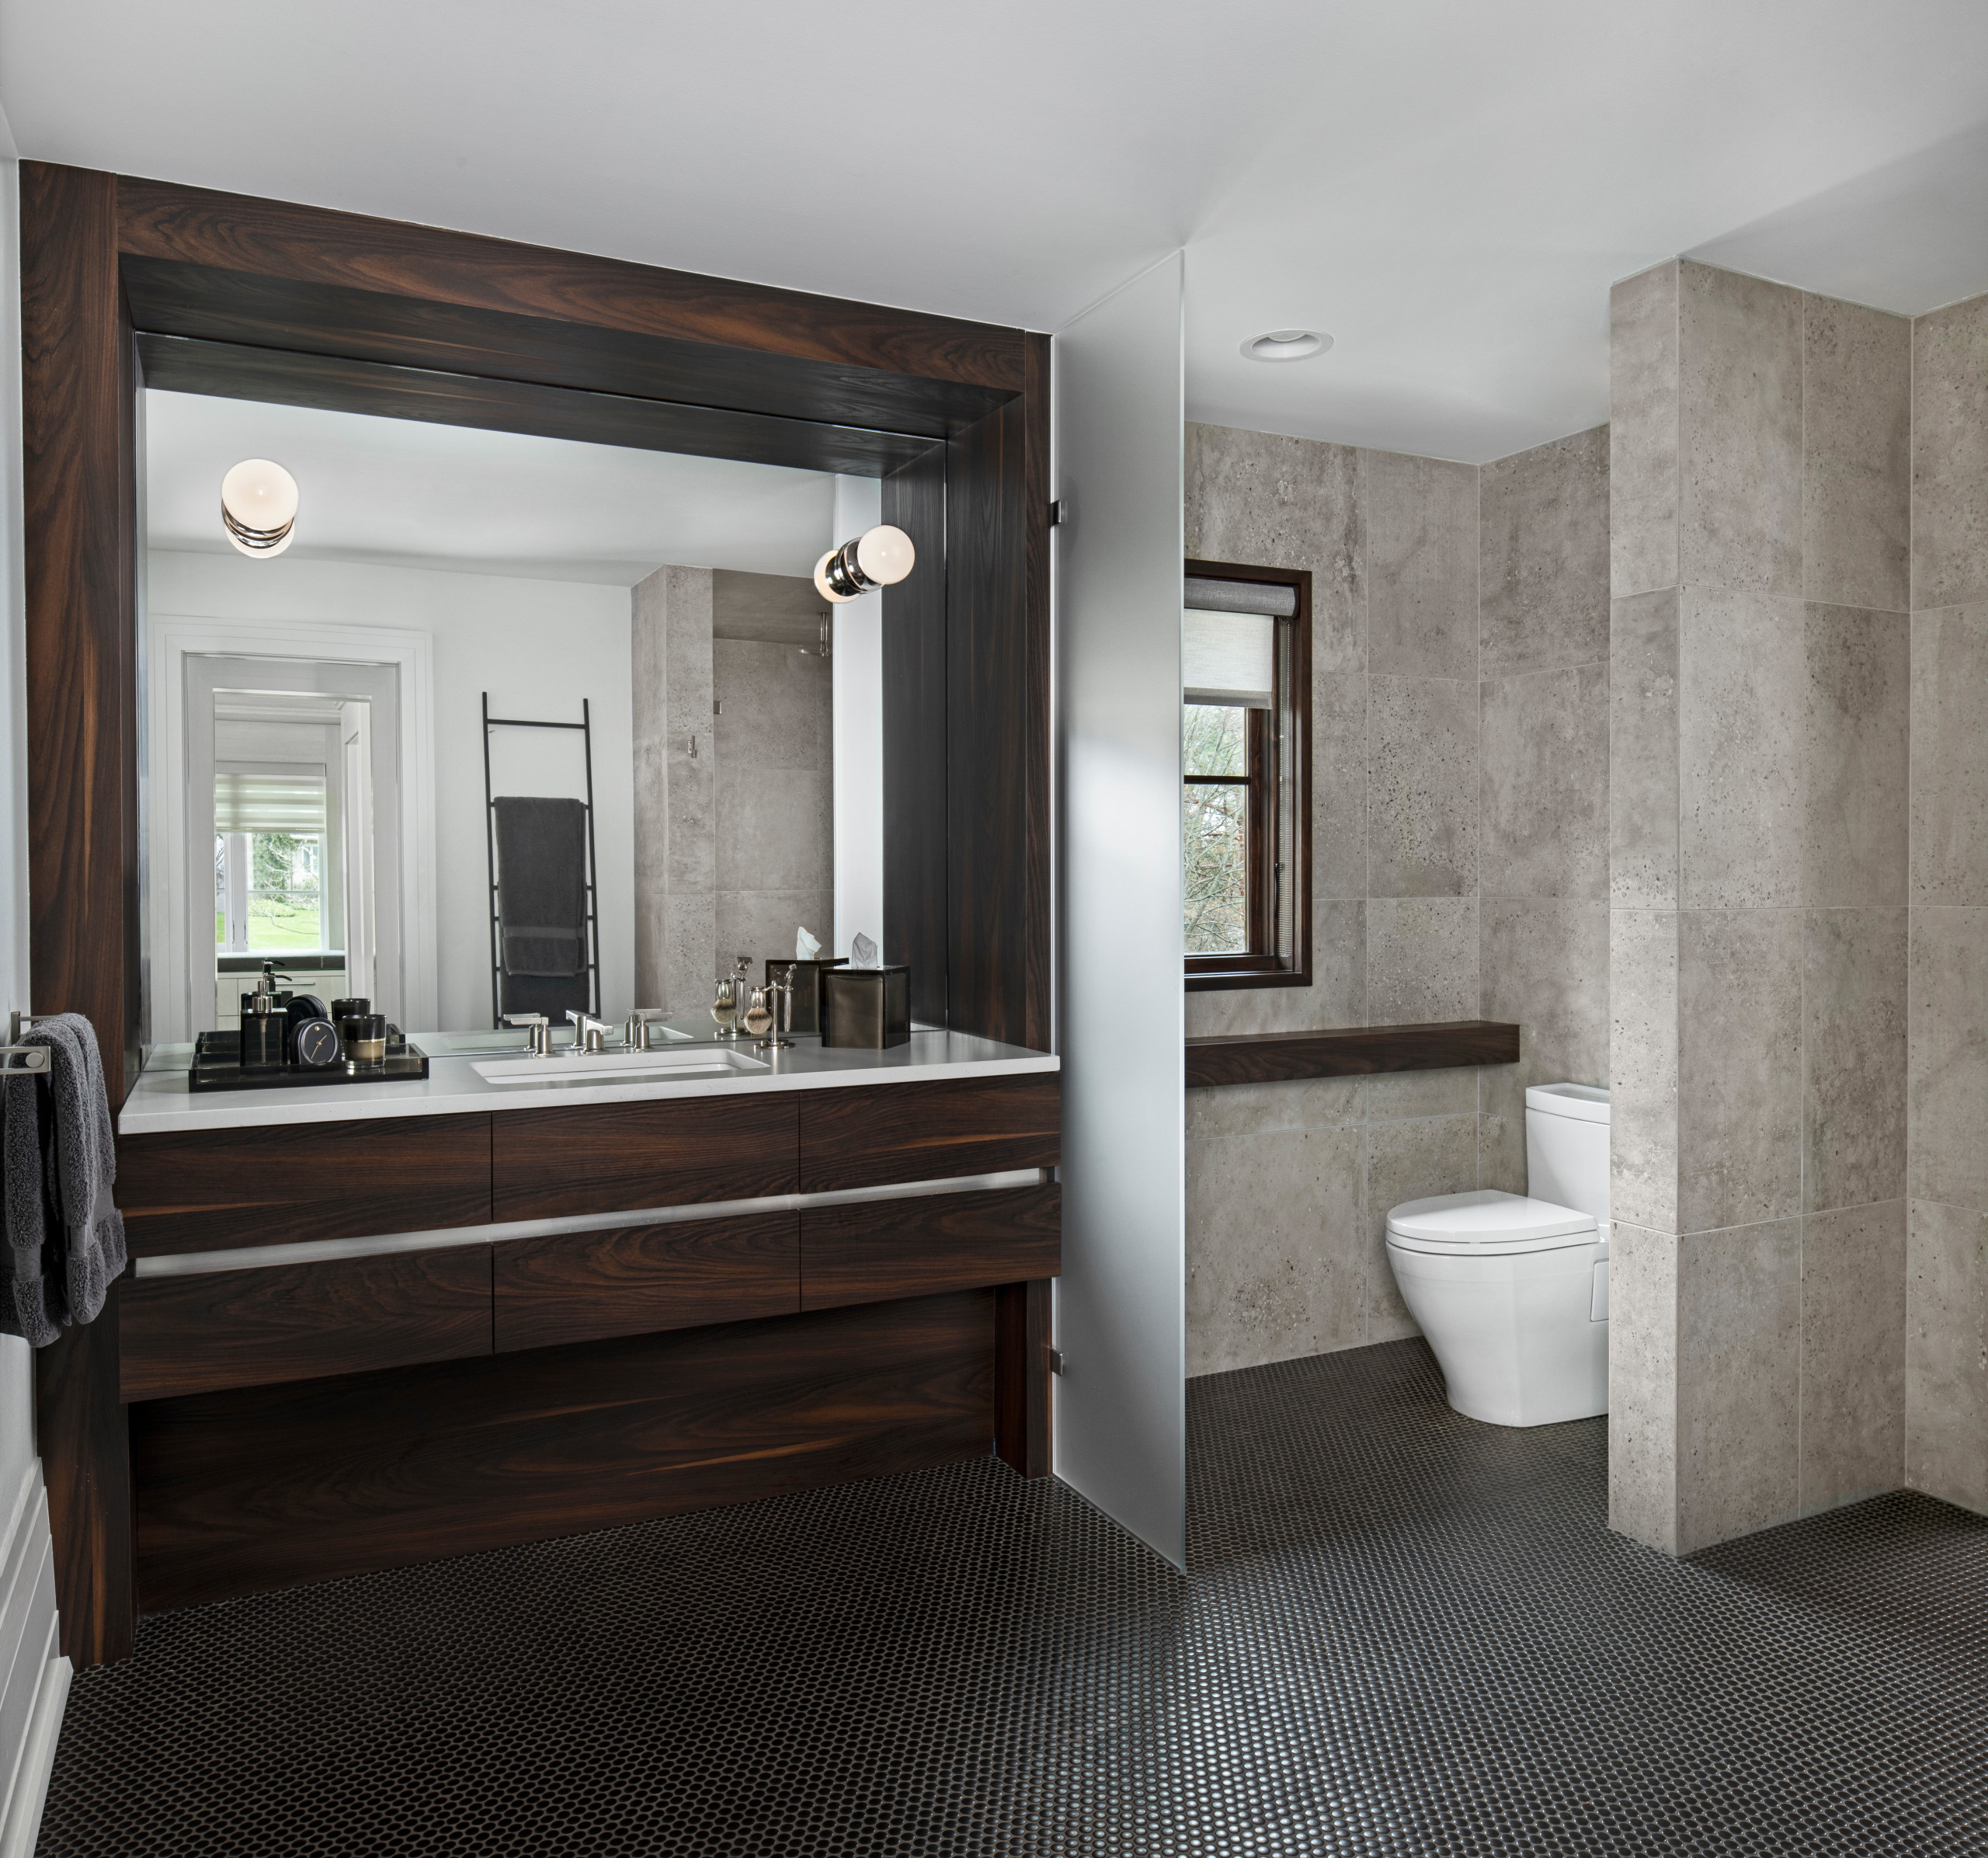 This custom vanity is the perfect place for Him to unwind after a long day. A wood surround and recessed panel below highlight the vanity drawers, which are separated by a stainless reveal across each